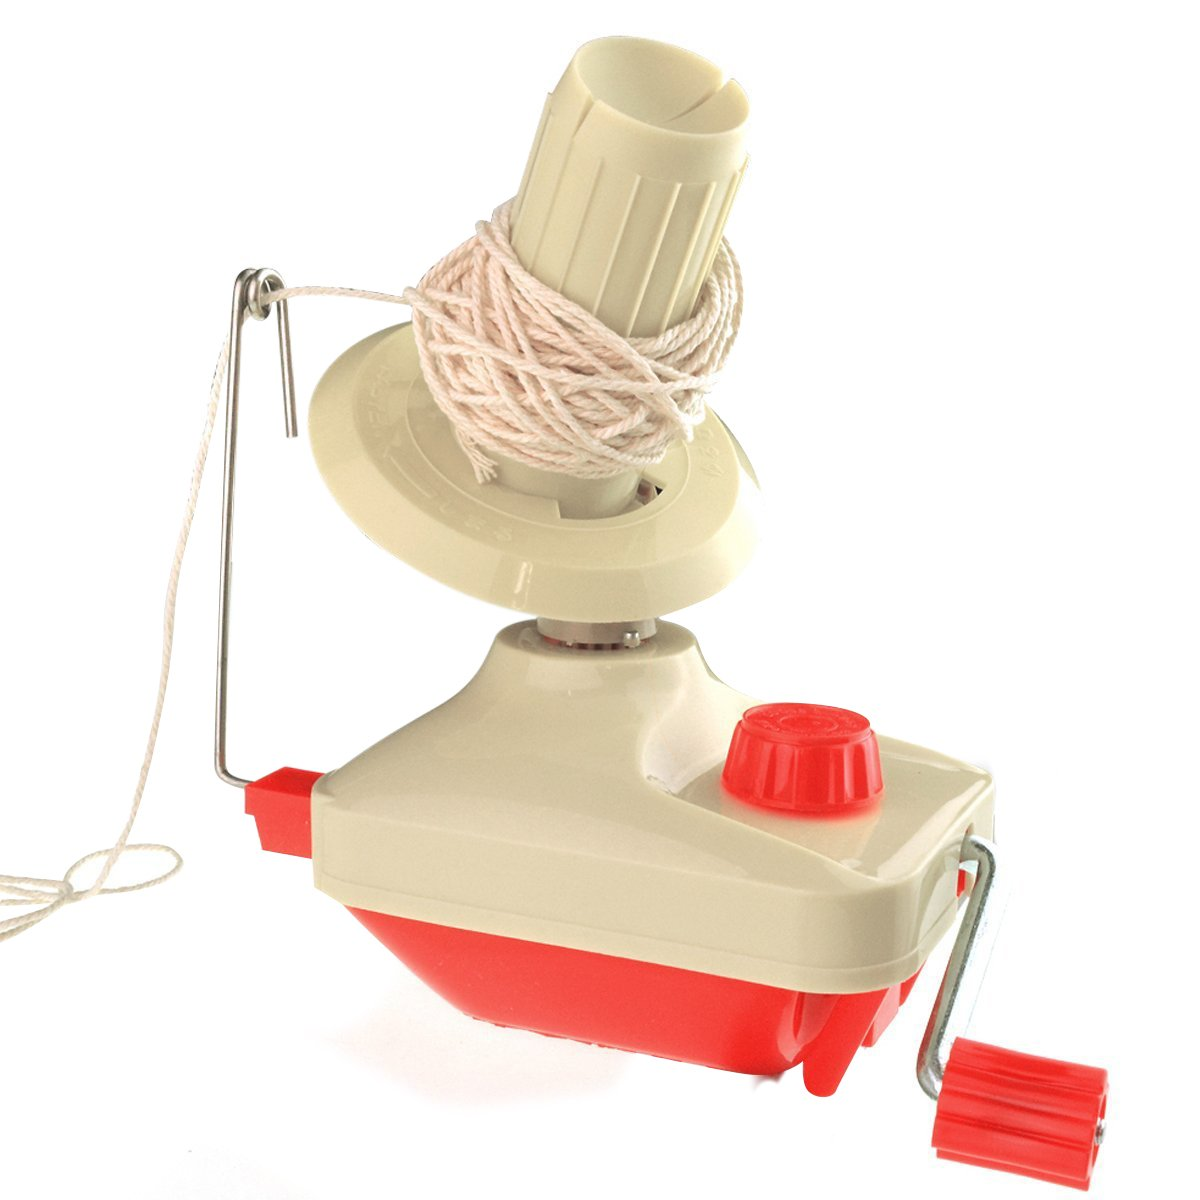 Bobbin Winder Yarn Winder Table Clasp, Marrywindix Hand Operated Manual Wool Winder Holder for Swift Yarn Fiber String Ball